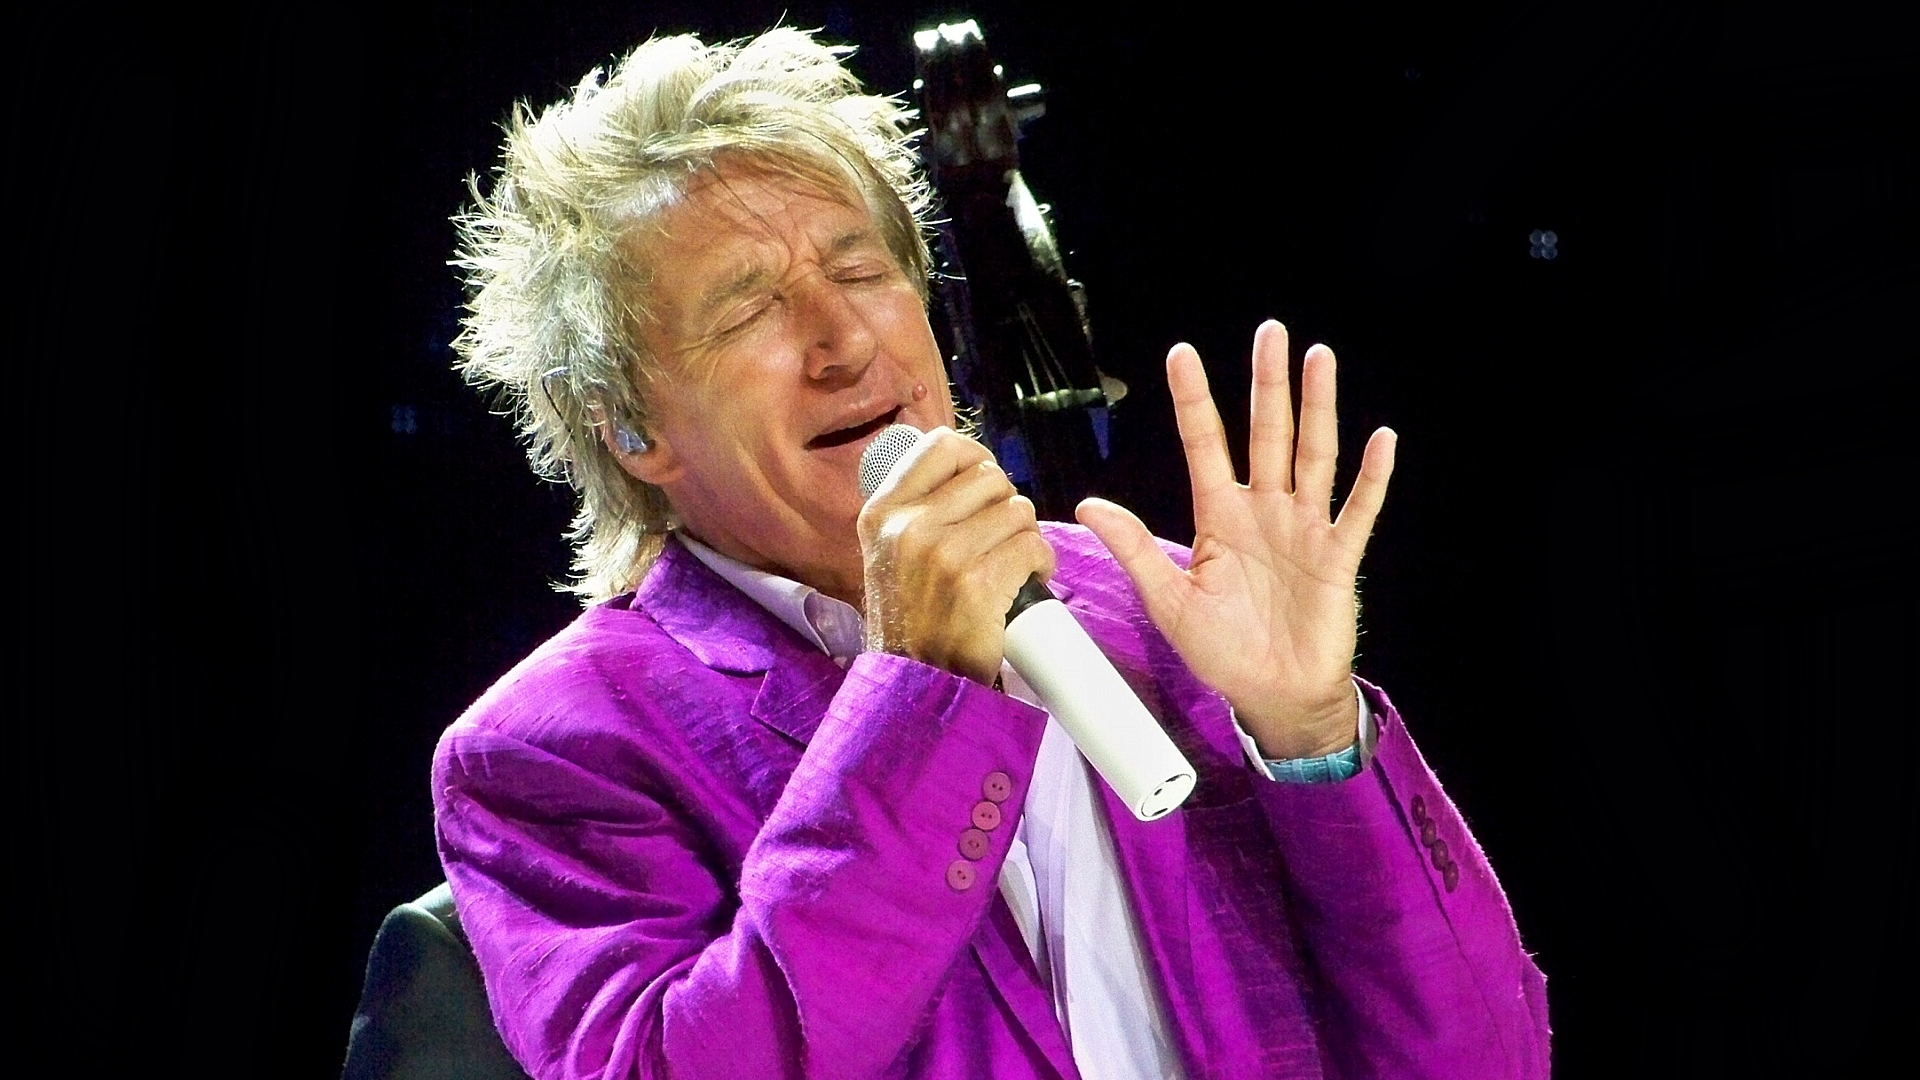 Young Turks av Rod Stewart